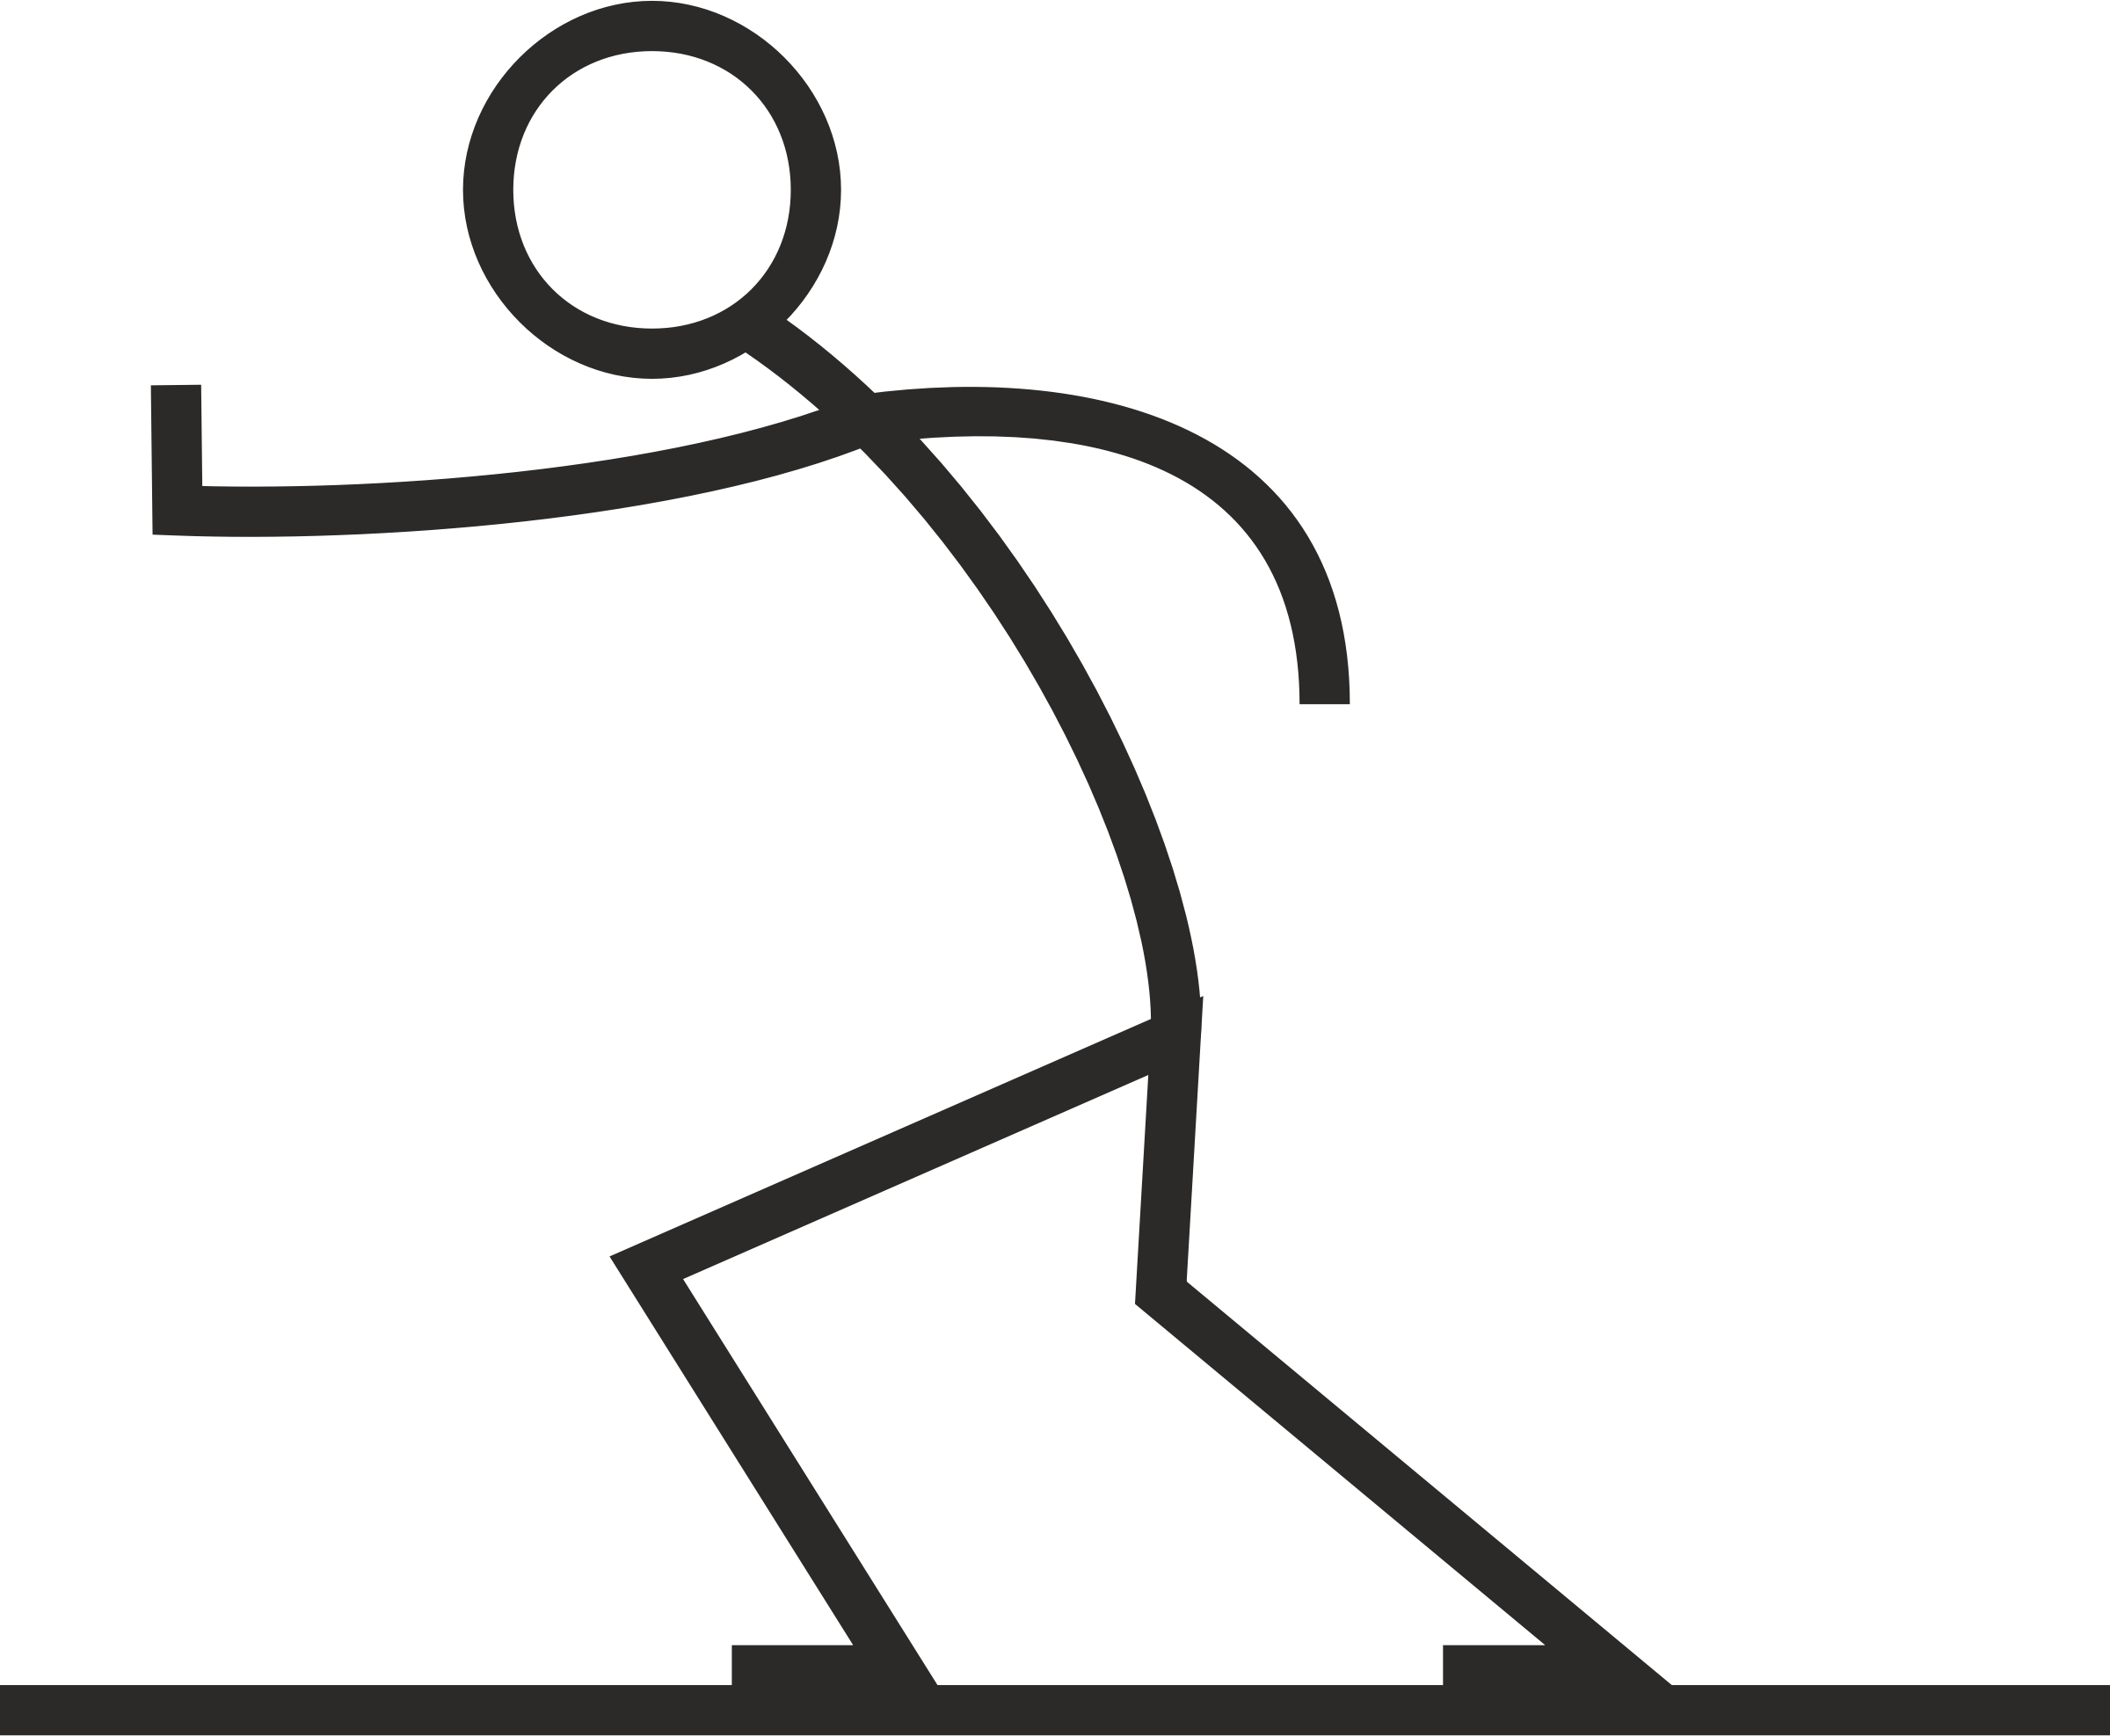 Clipart - Stick figure pushing